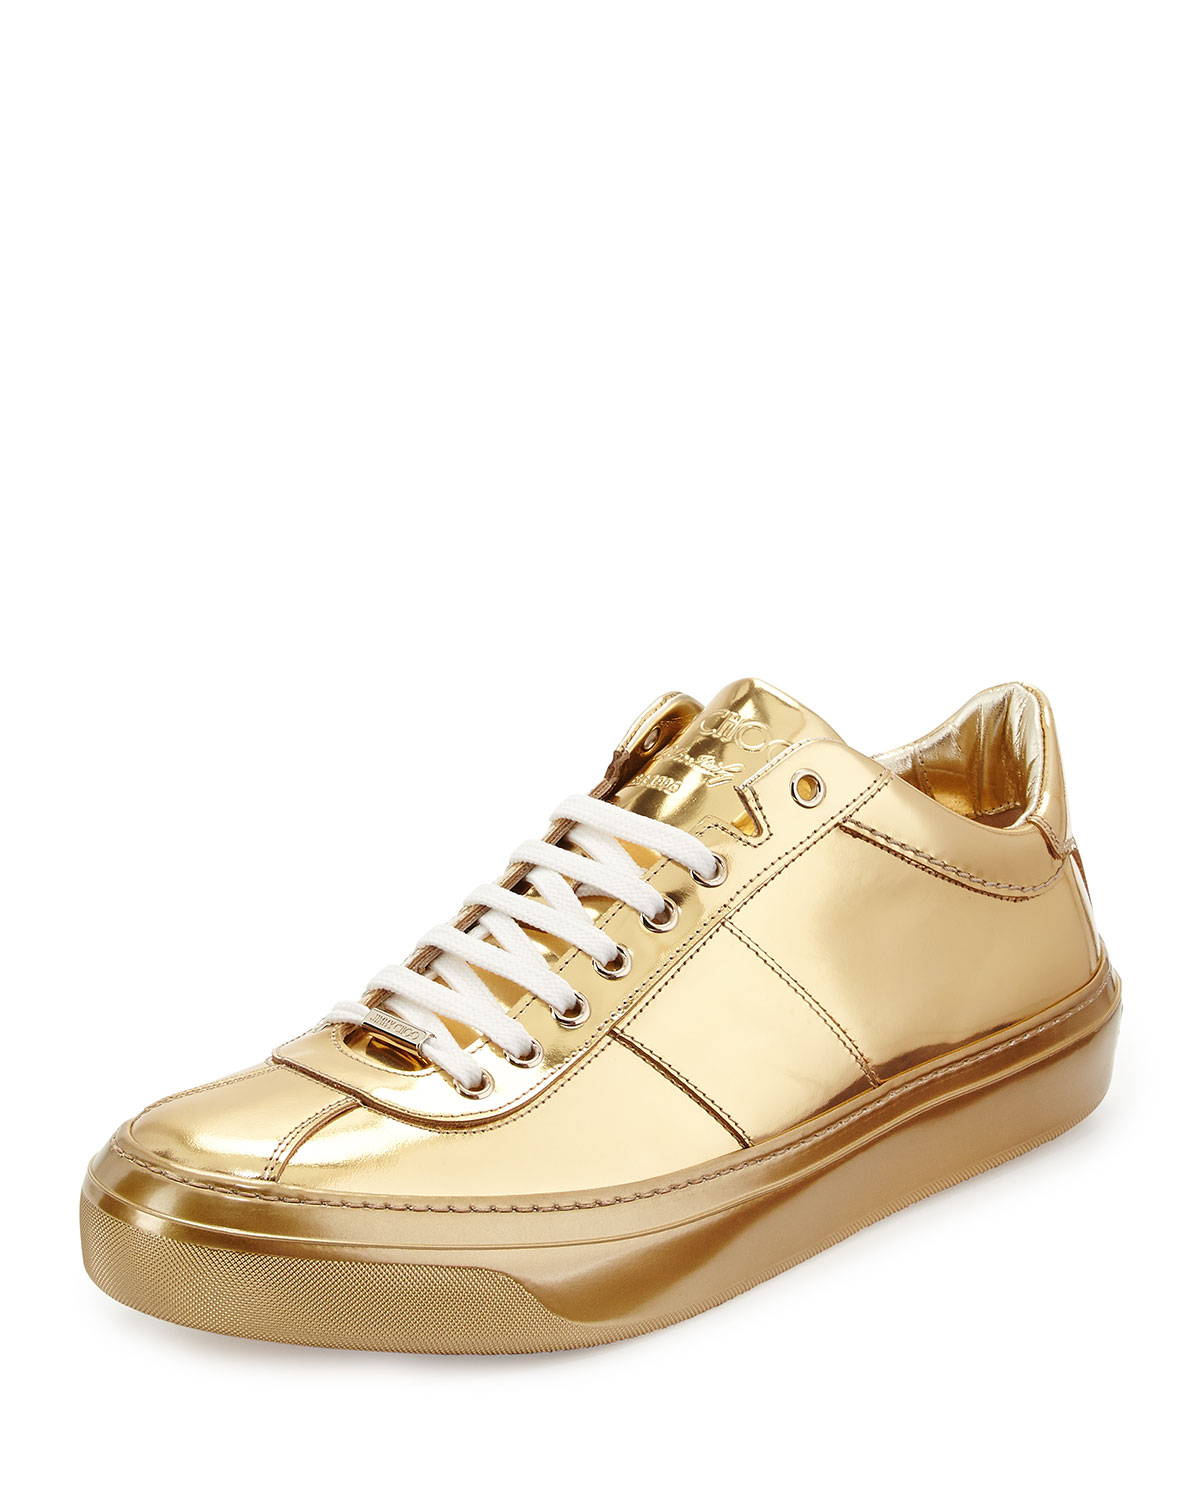 jimmy choo portman mirrored low top sneakers in metallic for men lyst. Black Bedroom Furniture Sets. Home Design Ideas